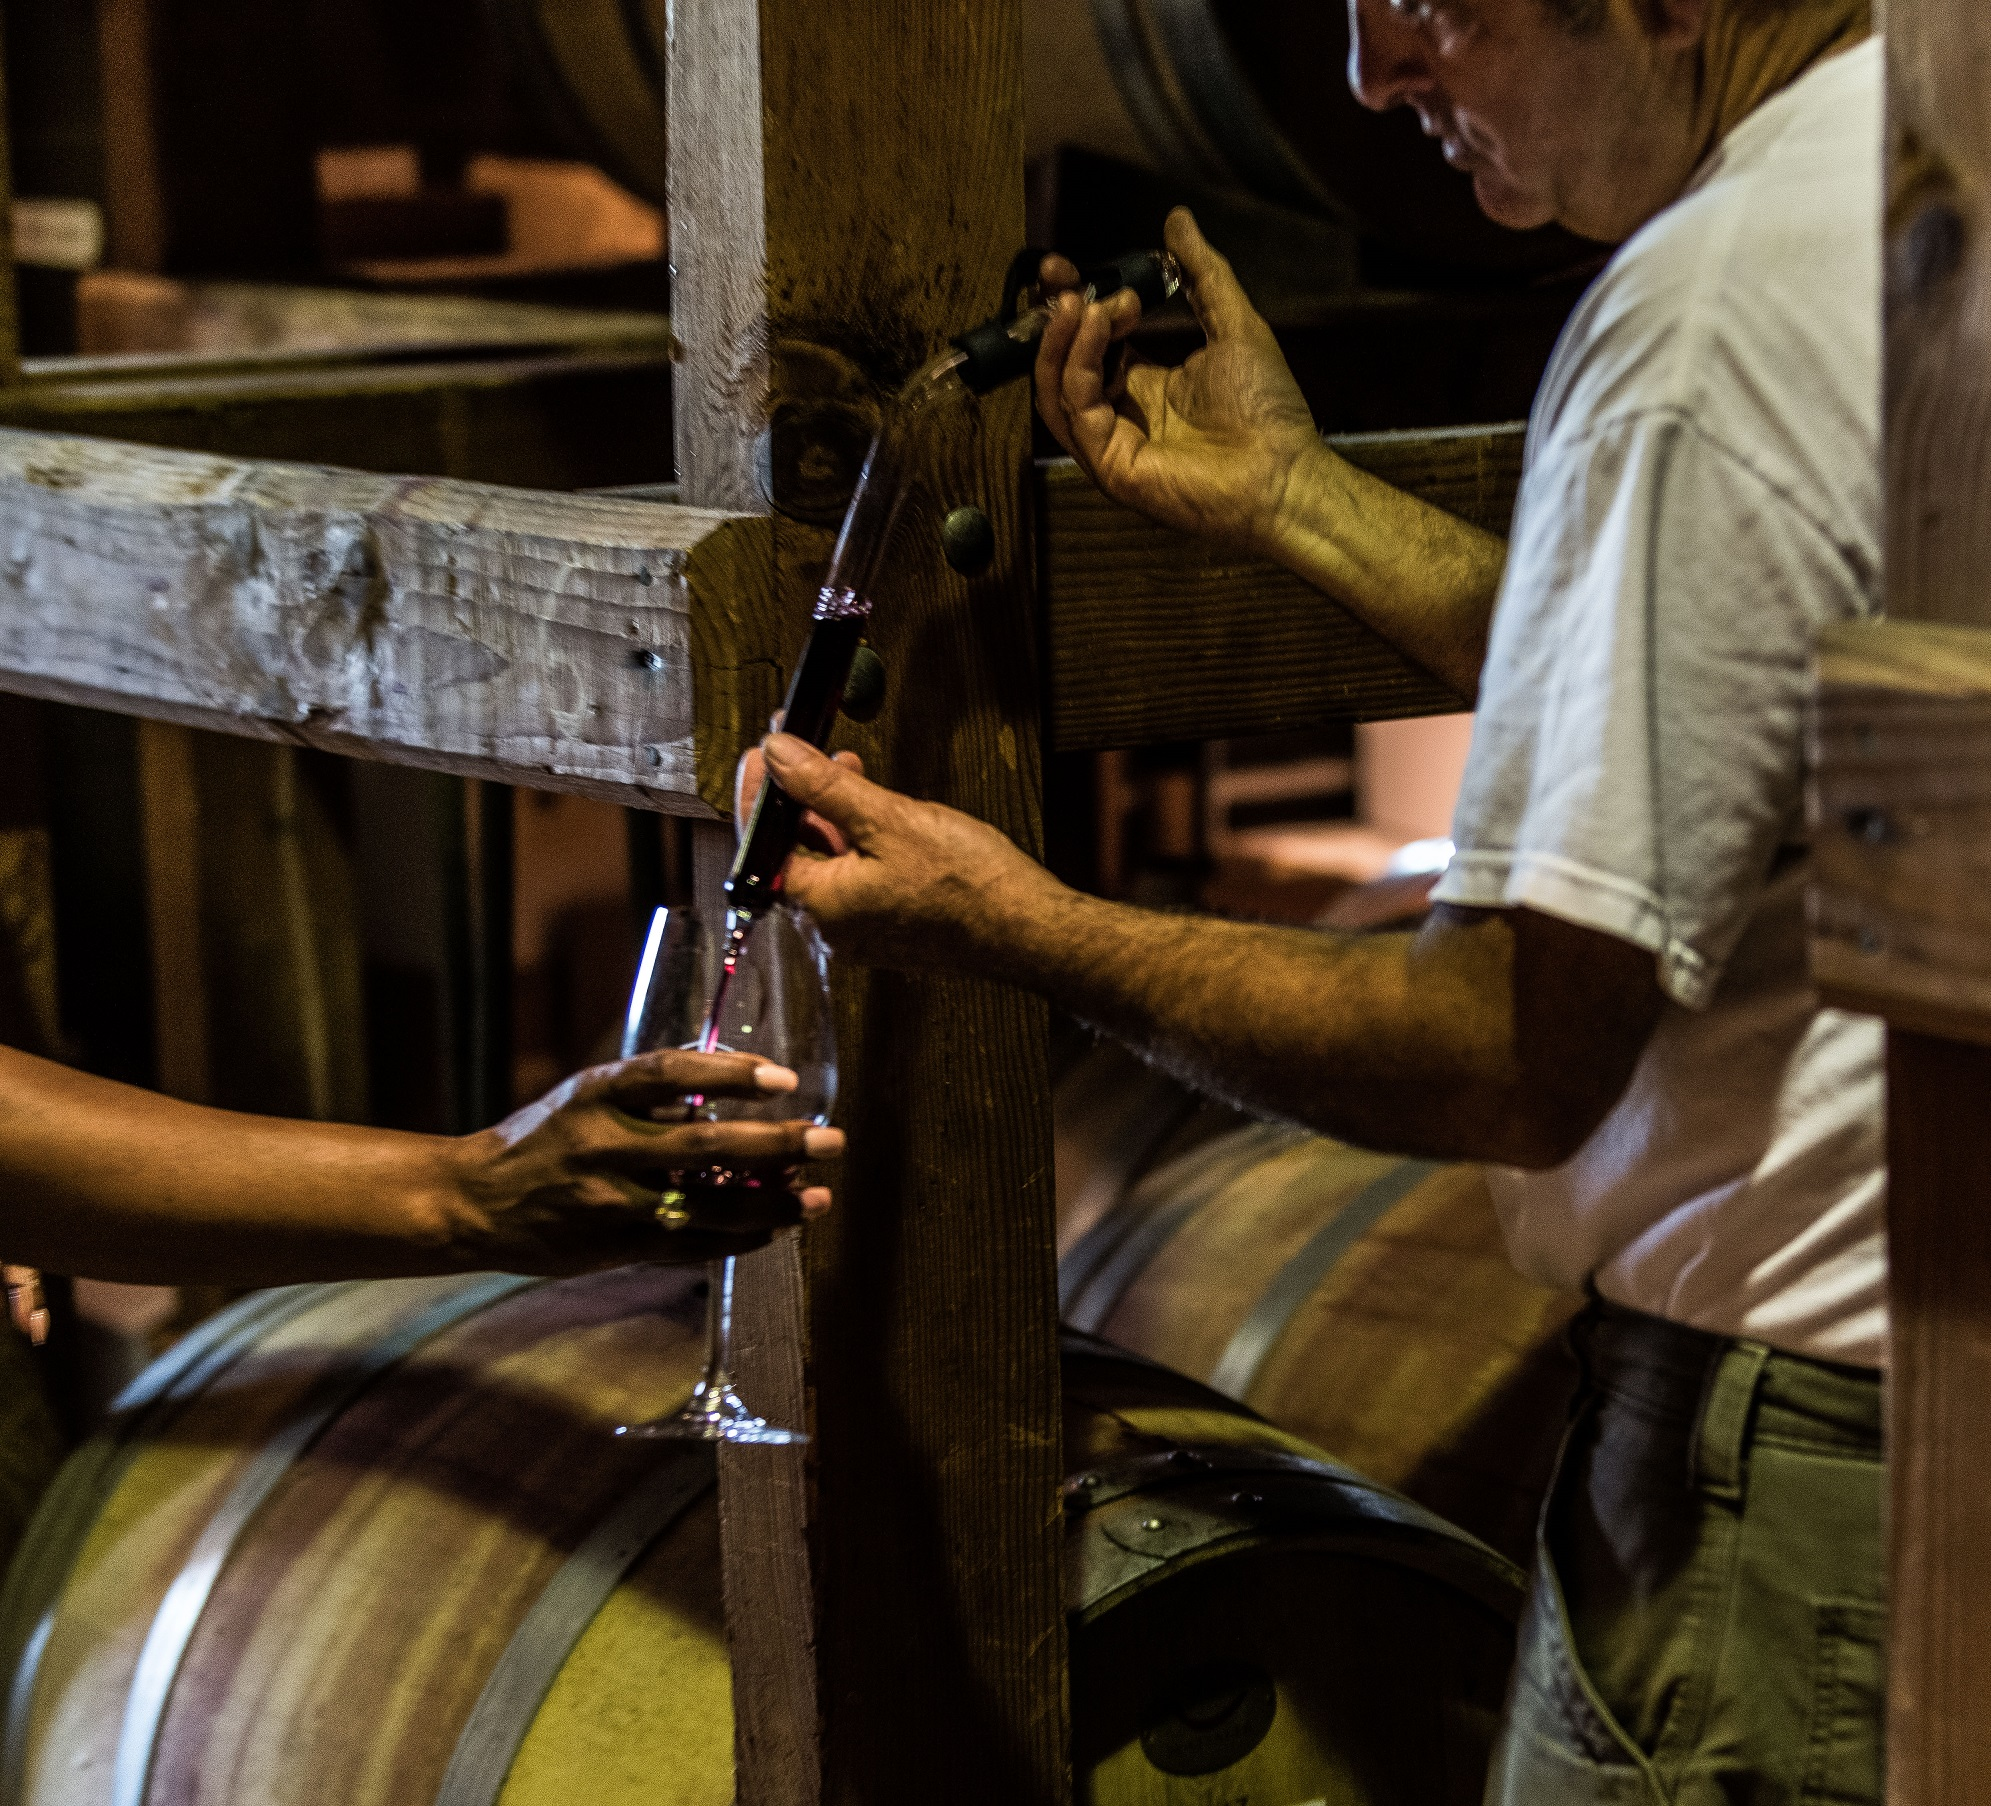 Wine is poured from a barrel using a Thief into a wine glass for tasting